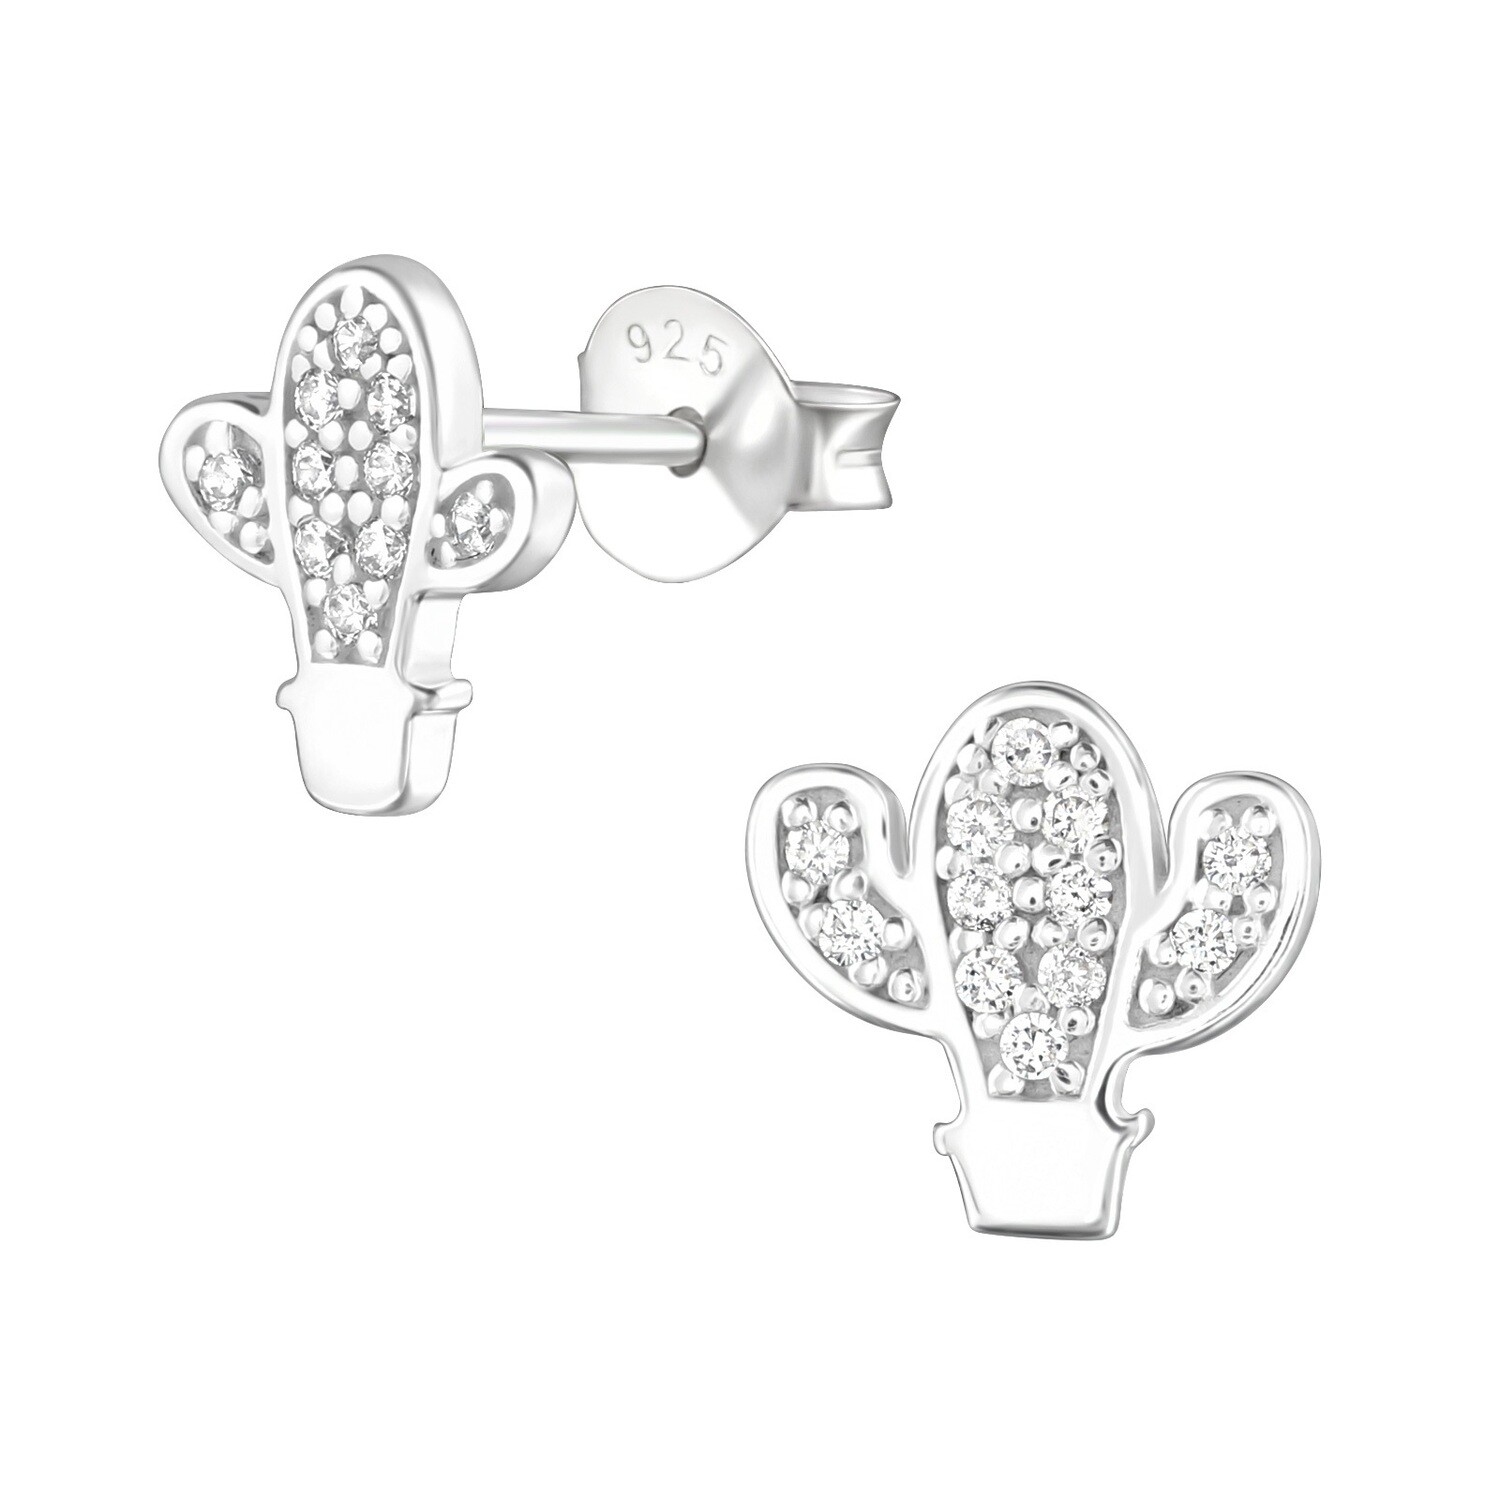 P36-82 Sterling Silver Cactus Posts